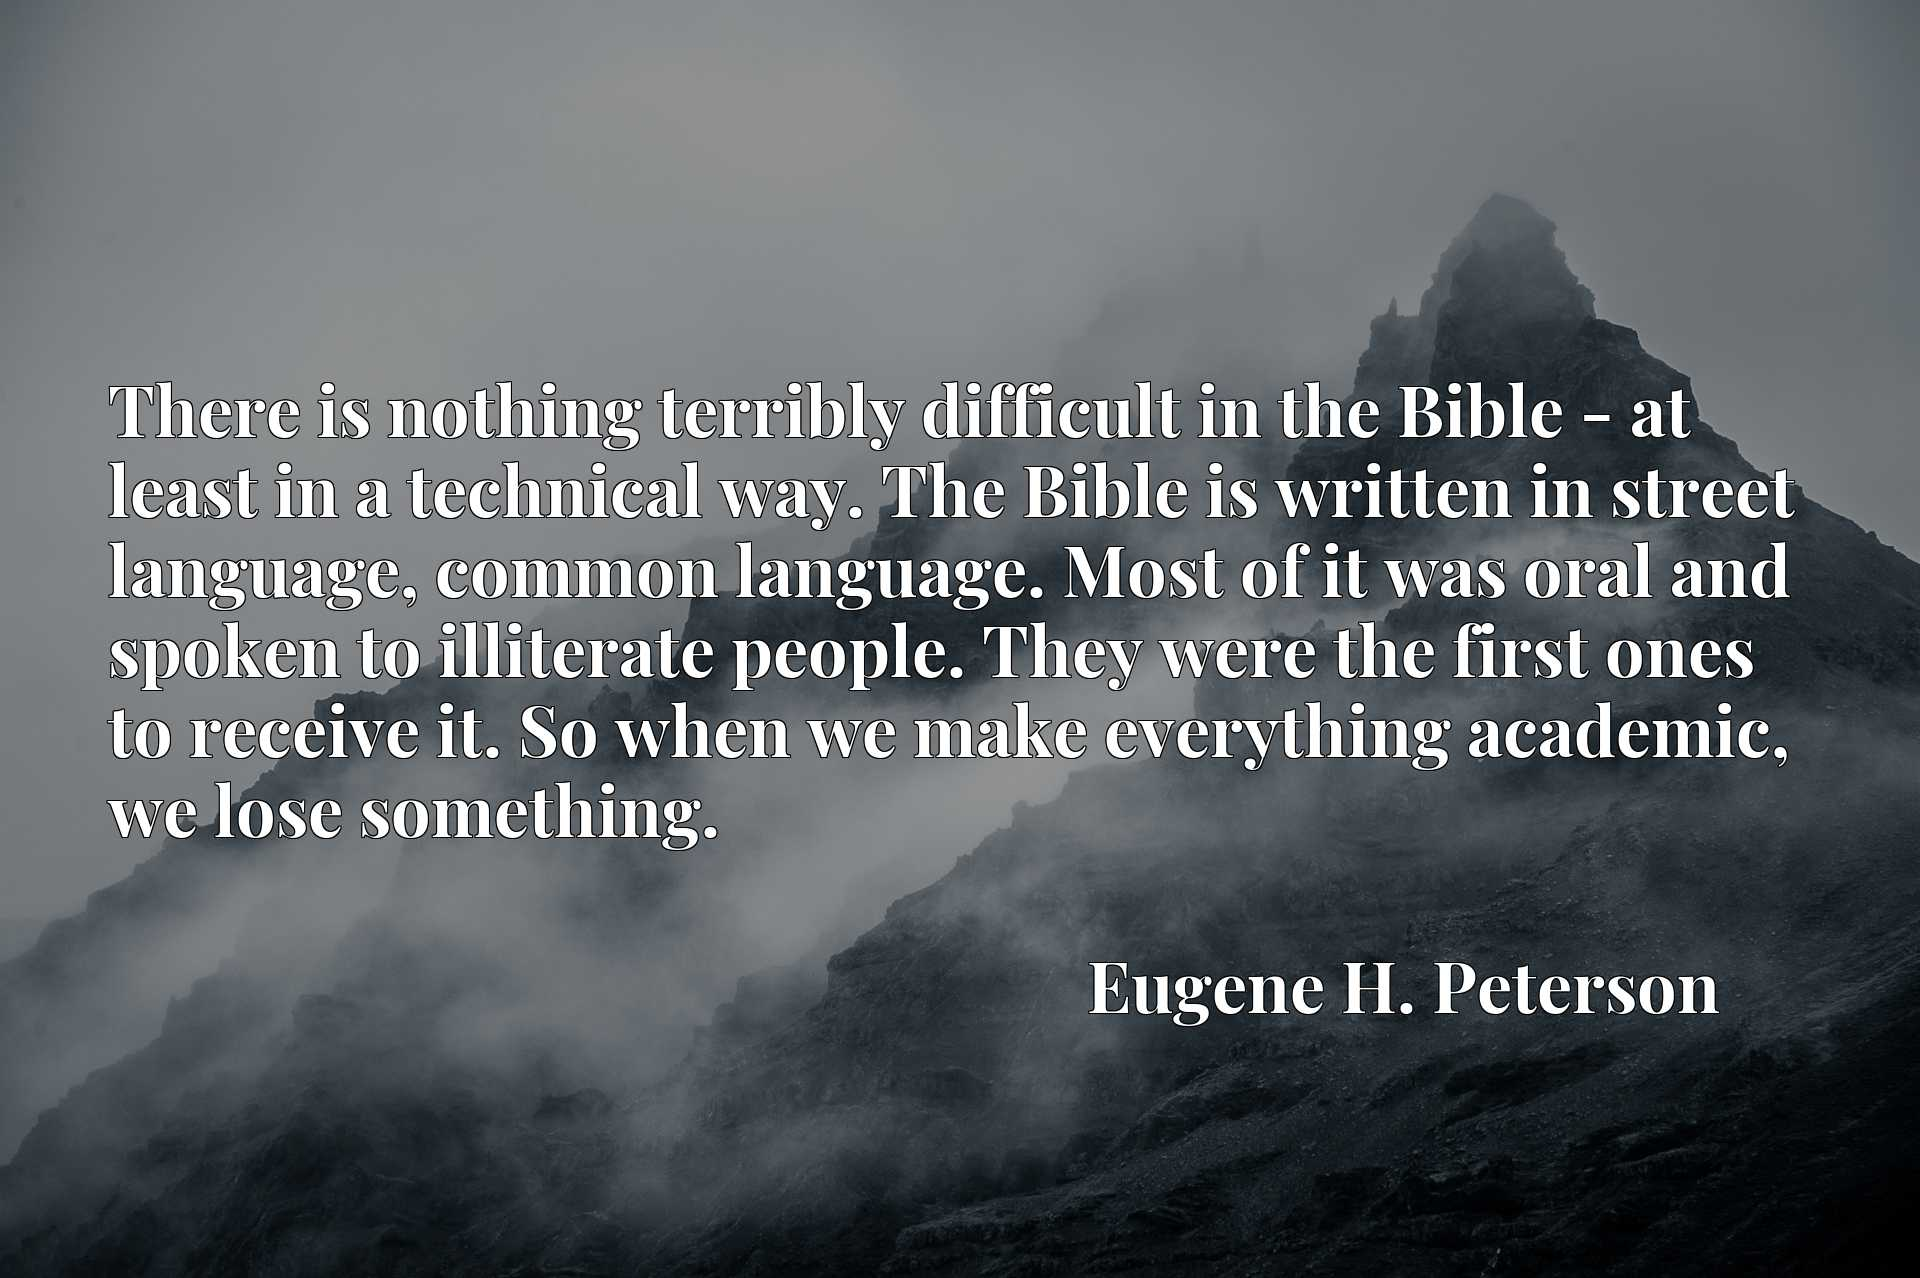 There is nothing terribly difficult in the Bible - at least in a technical way. The Bible is written in street language, common language. Most of it was oral and spoken to illiterate people. They were the first ones to receive it. So when we make everything academic, we lose something.